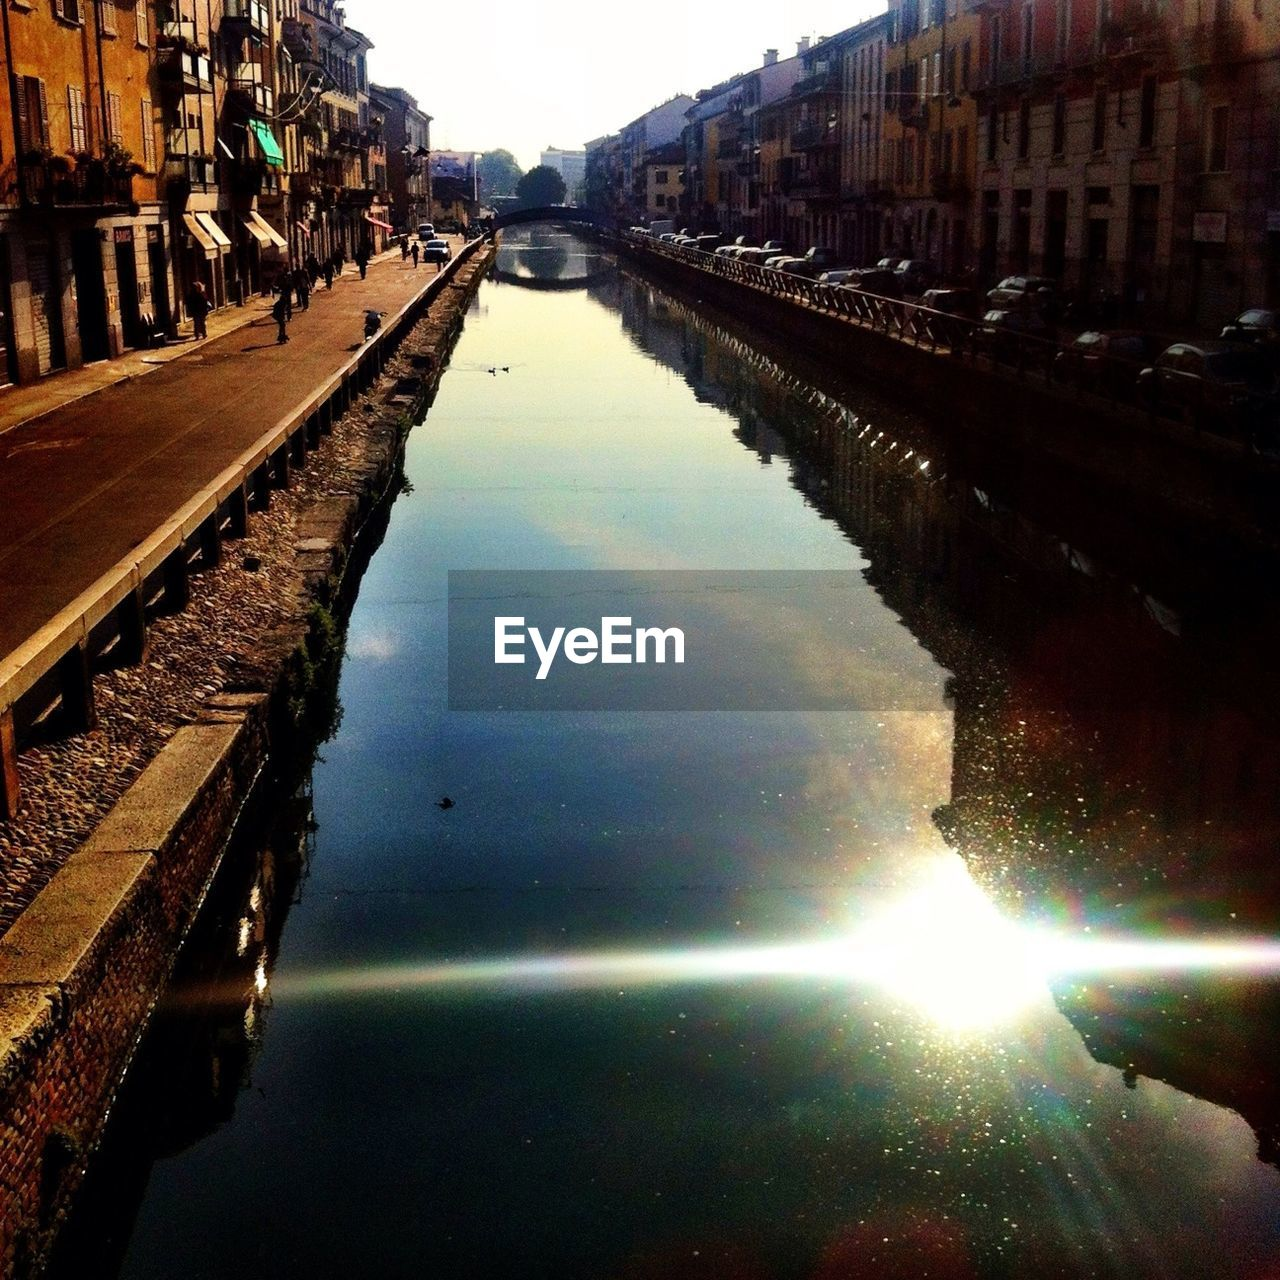 Reflection of sun in canal amidst buildings in city